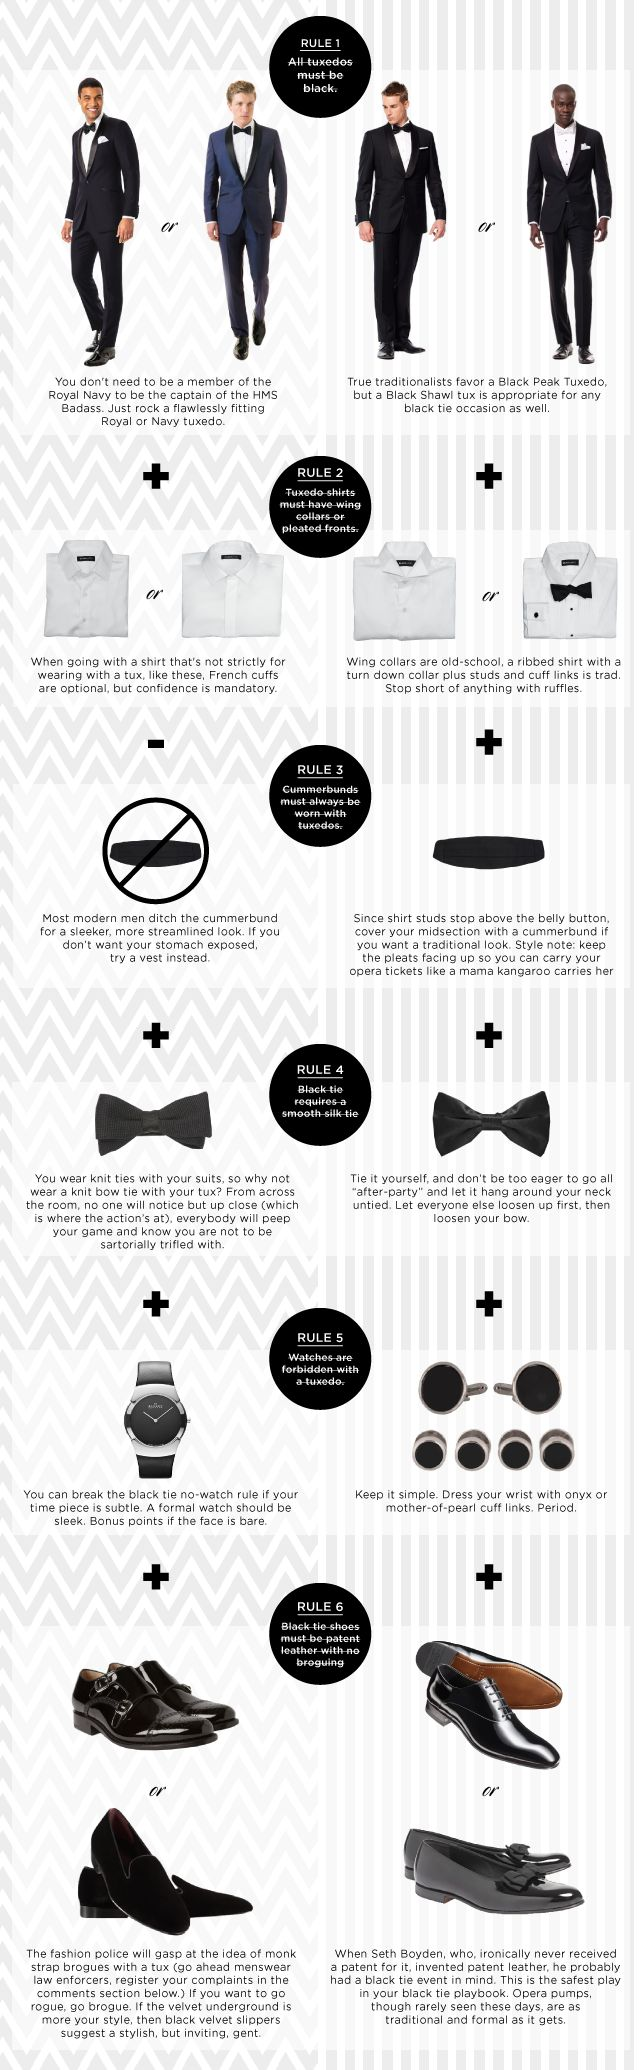 Looking to shake up your tux look and break a few black tie rules? Check out this guide that'll help you zig when everybody else zags.